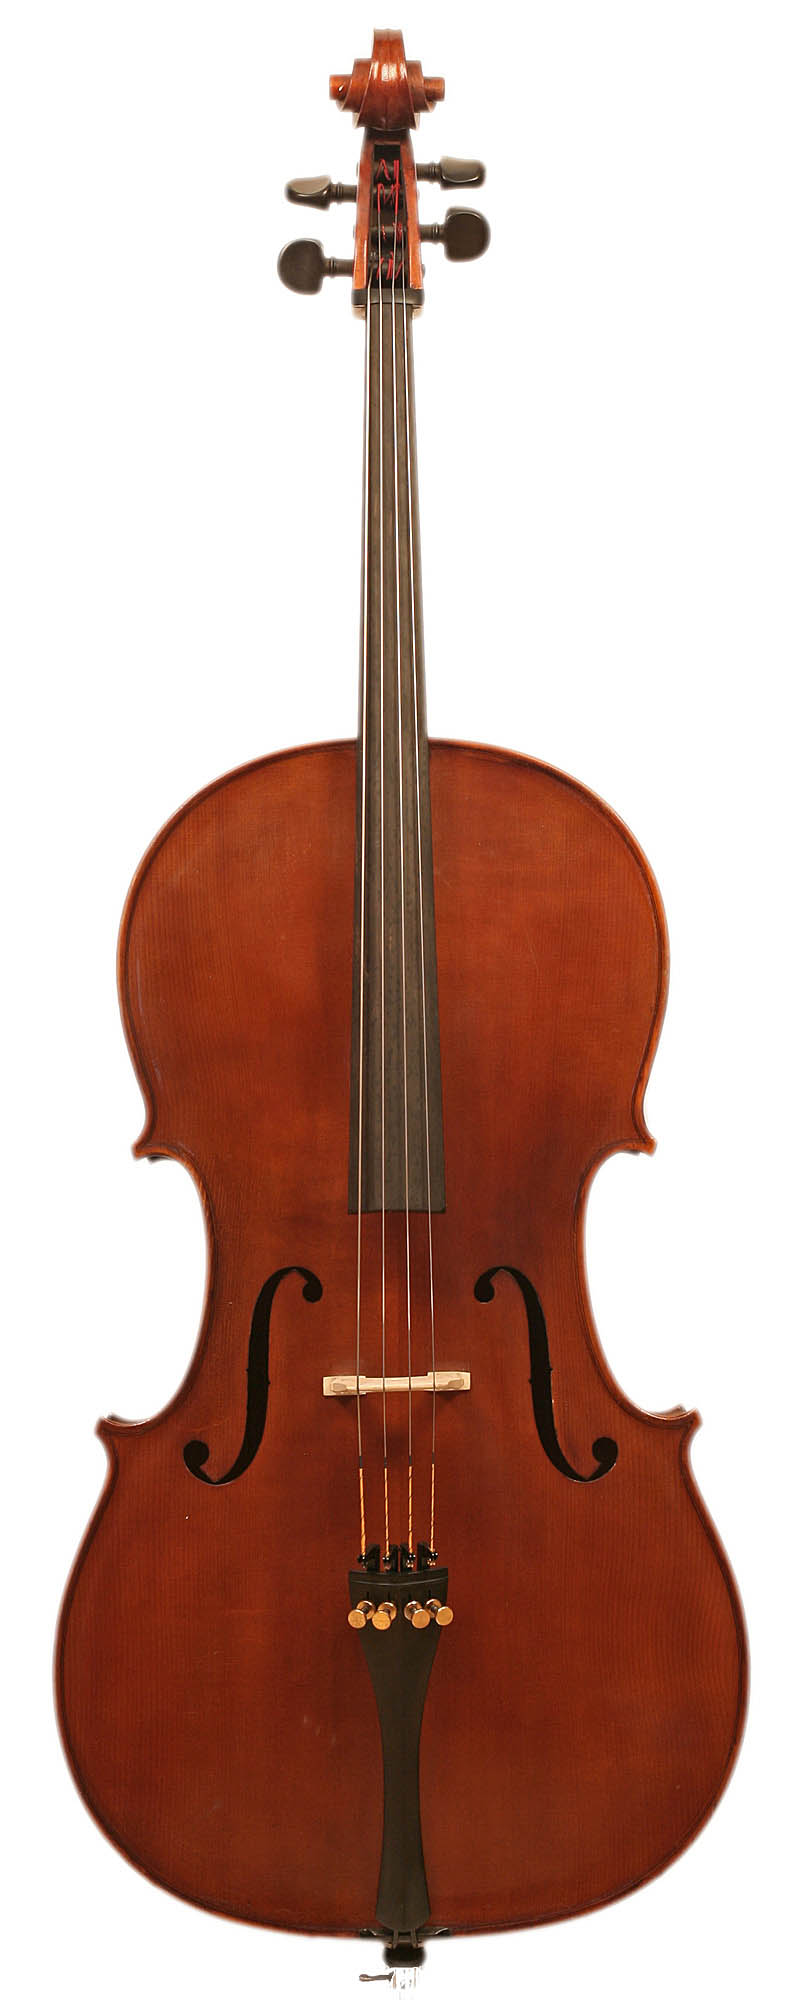 Van Wirdum Cello, Terrigal 1978